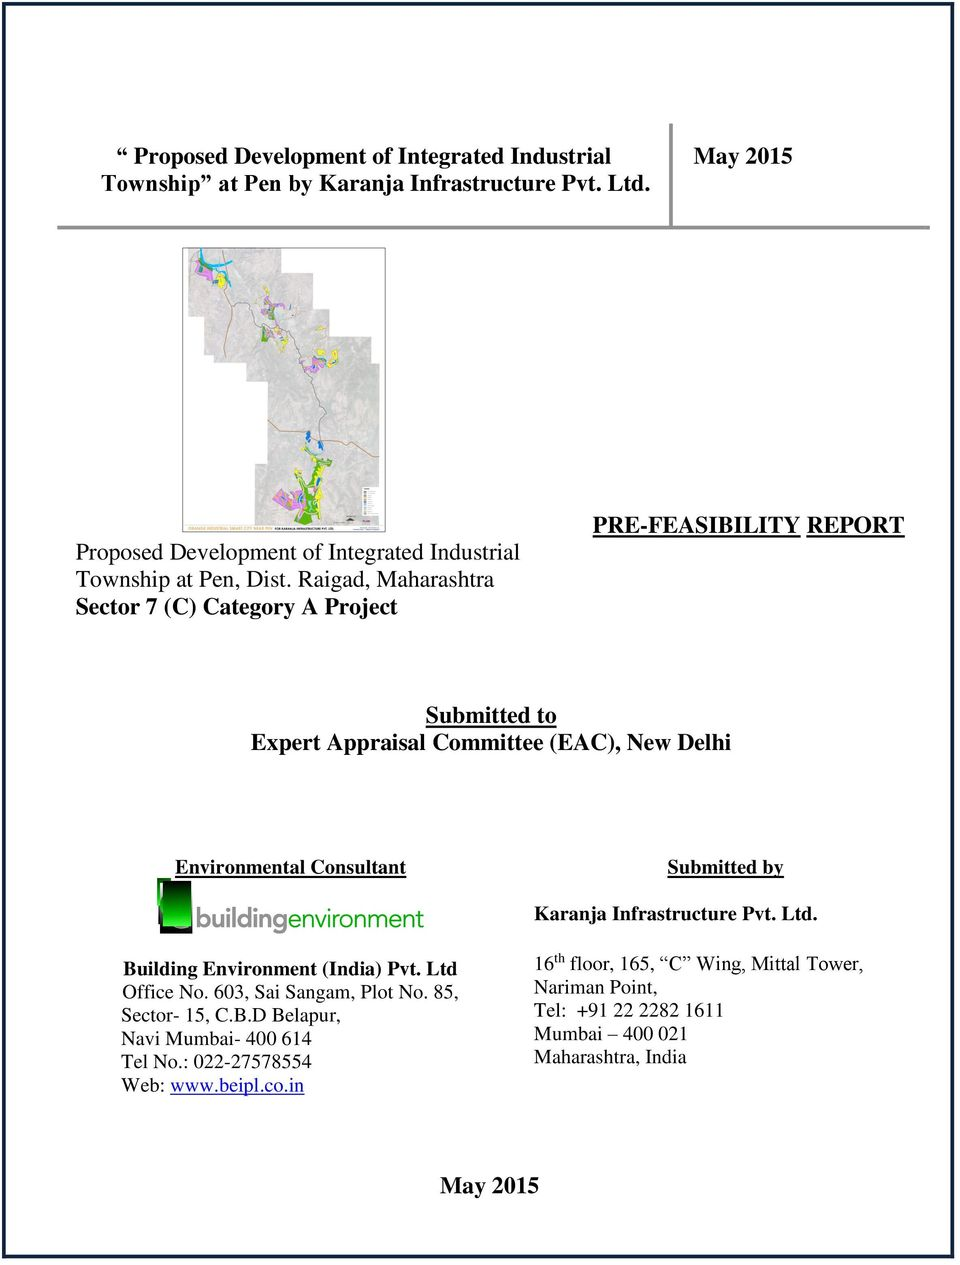 Raigad, Maharashtra Sector 7 (C) Category A Project PRE-FEASIBILITY REPORT Submitted to Expert Appraisal Committee (EAC), New Delhi Environmental Consultant Submitted